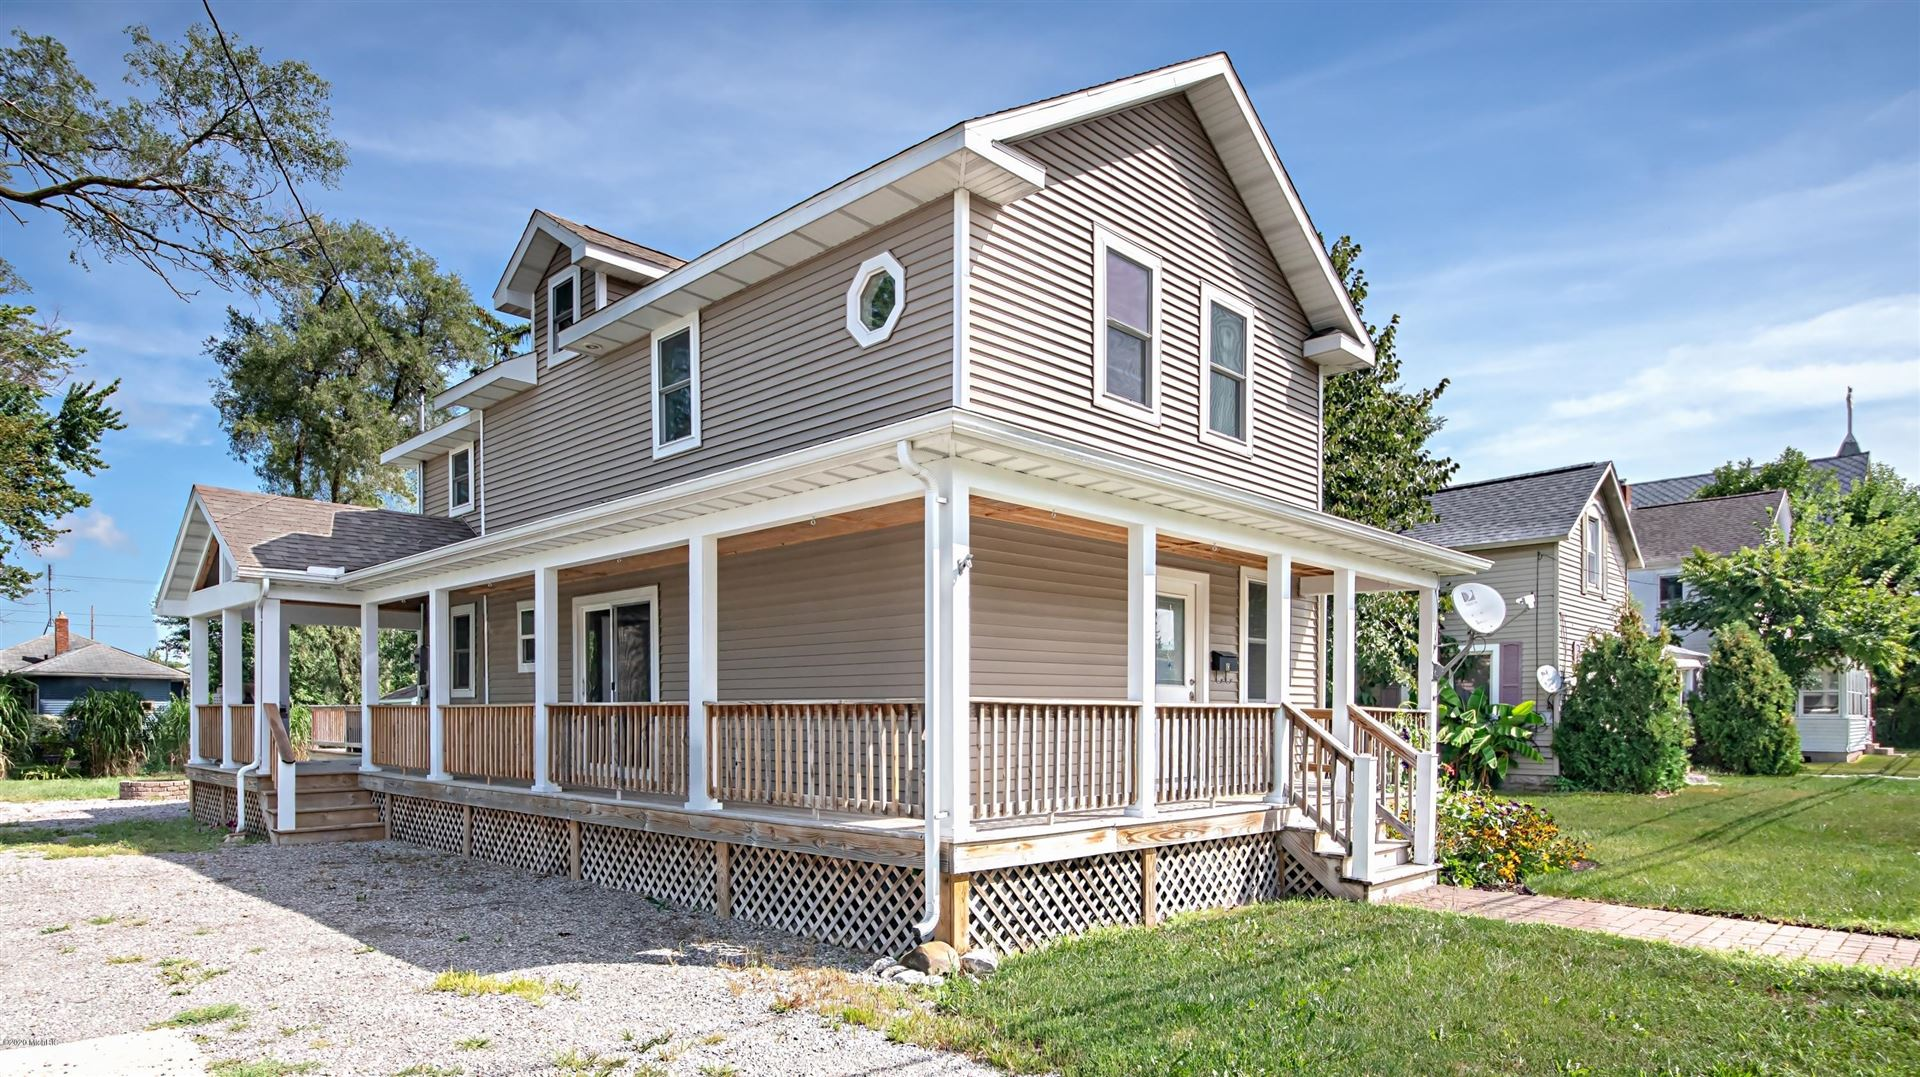 18 W Ash Street, Three Oaks, MI 49128 - MLS#: 20037243